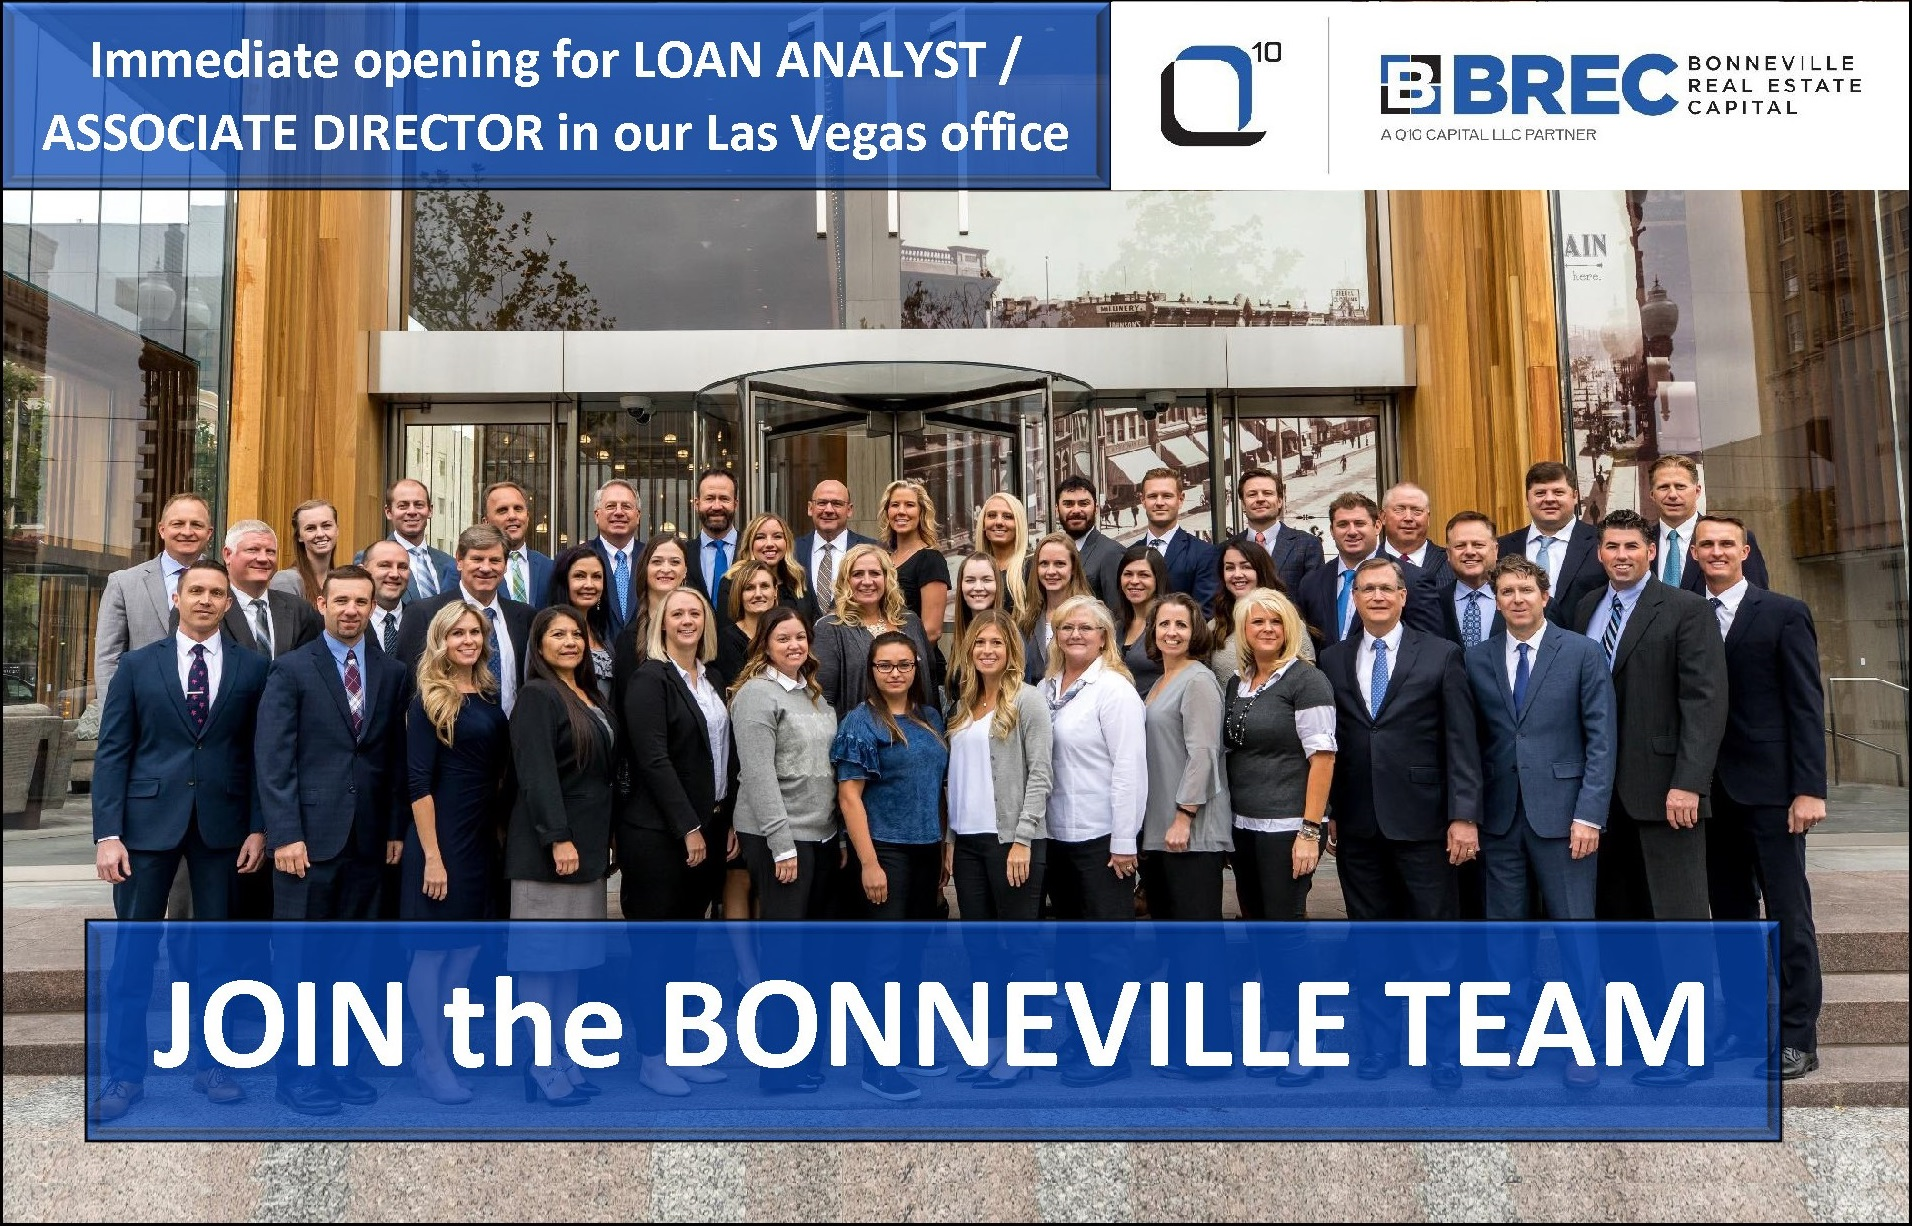 Immediate opening for a LOAN ANALYST / ASSOCIATE DIRECTOR in our Las Vegas office. Join the Bonneville team.